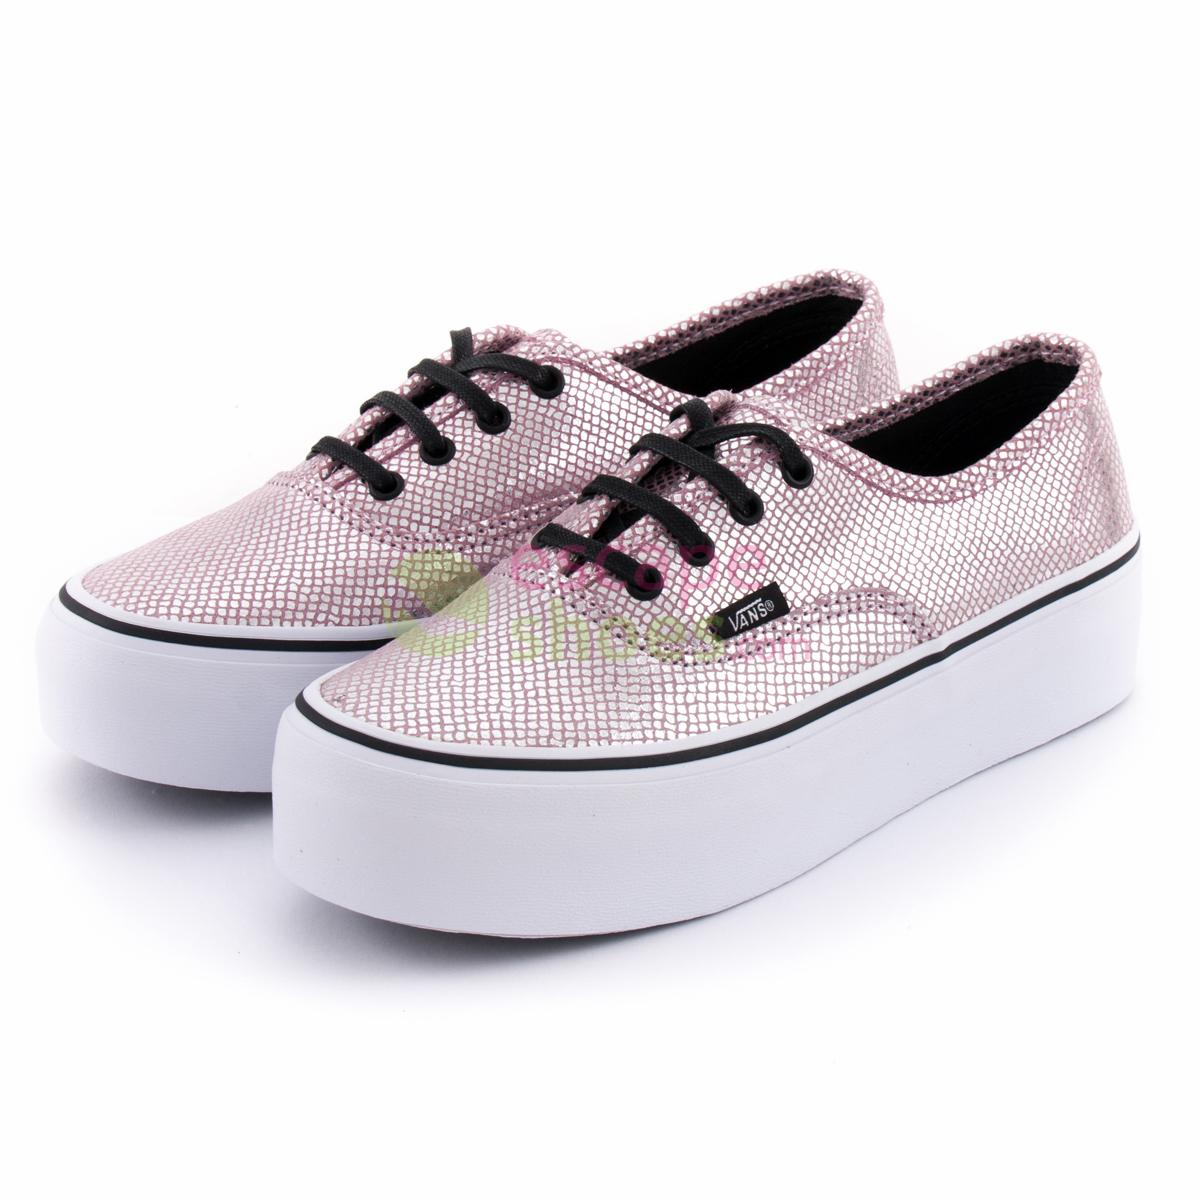 Buy your Sneakers VANS VYPPGJD Authentic Platform Metallic Snake ... f16debc34b